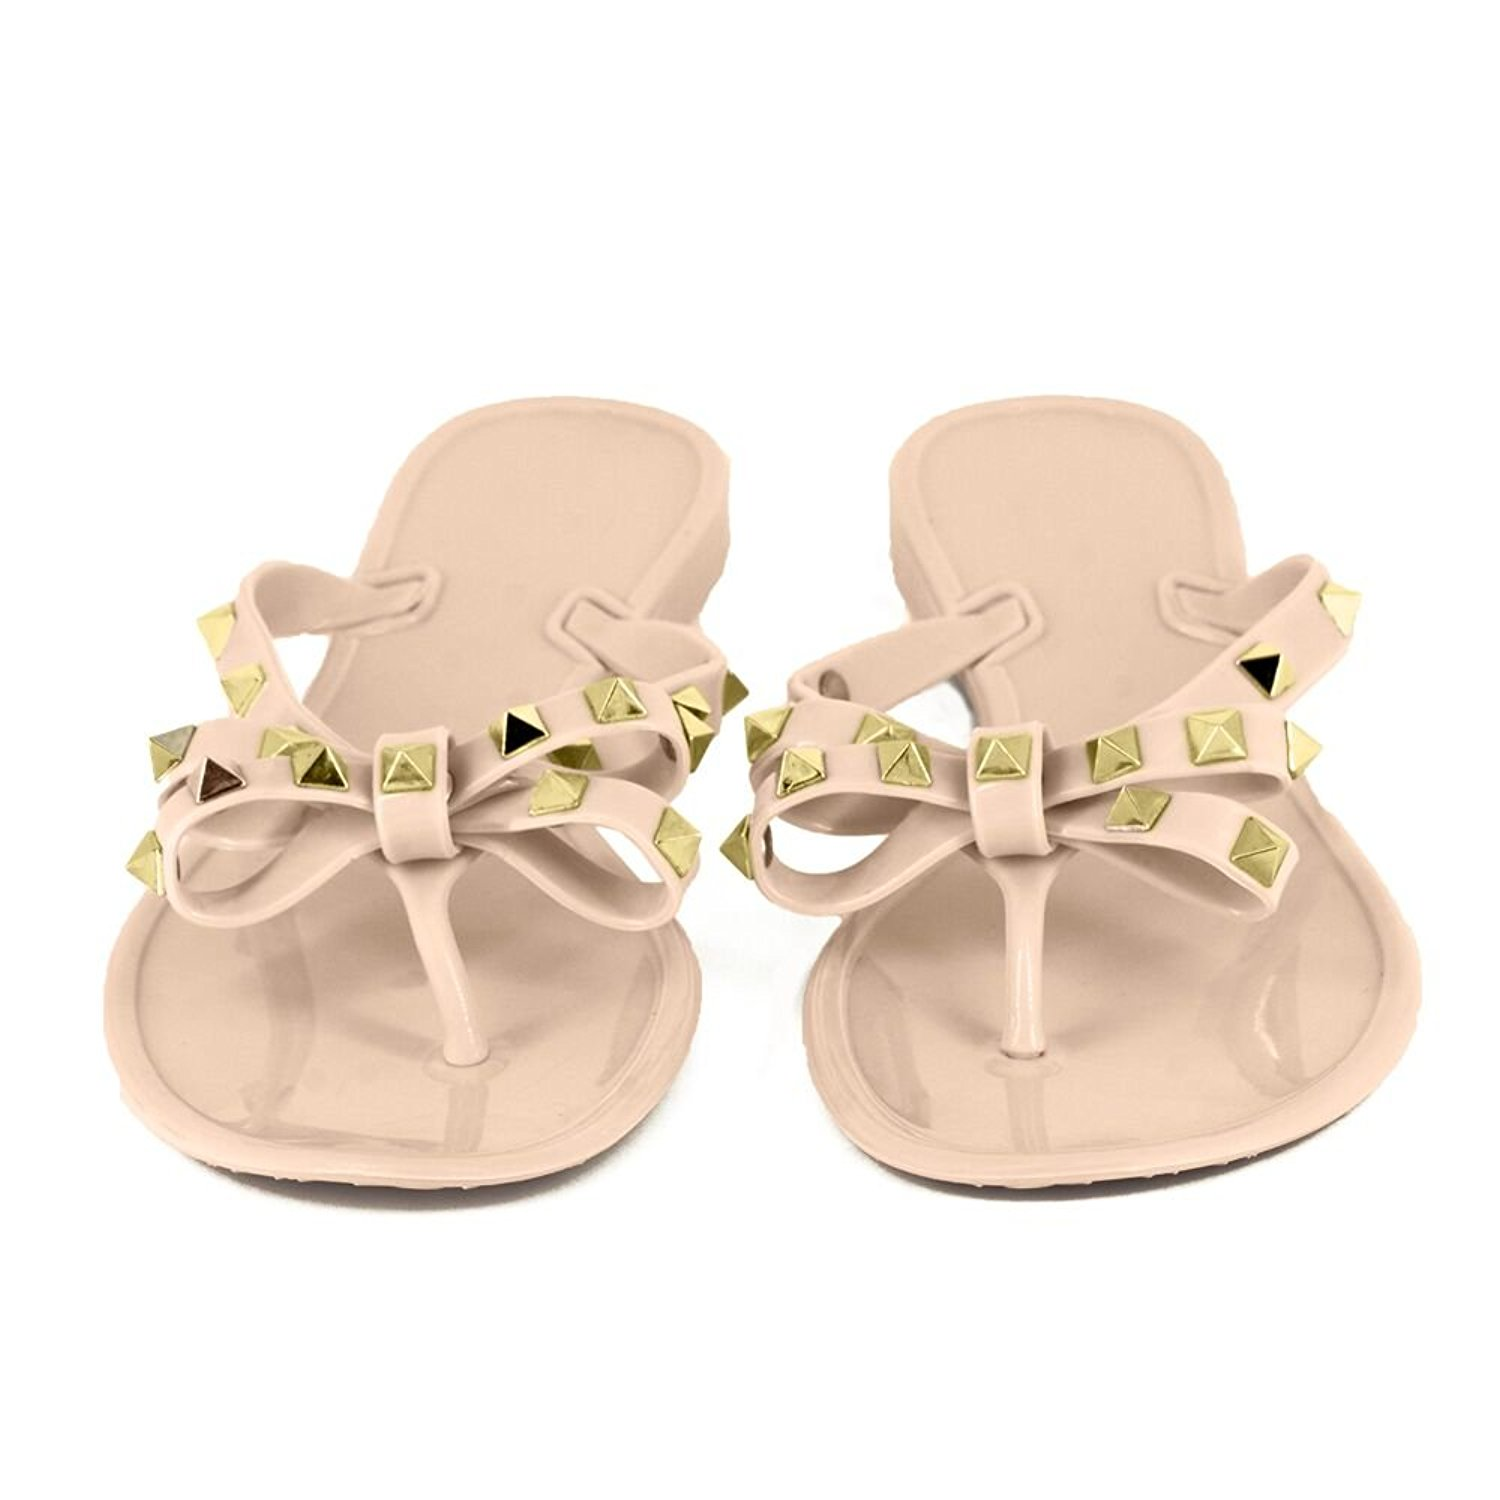 d9b83ee7be634 Get Quotations · Utop Women s Rivets Bowtie Flip Flops Jelly Thong Sandal  Rubber Flat Slipper Summer Beach Rain Shoes